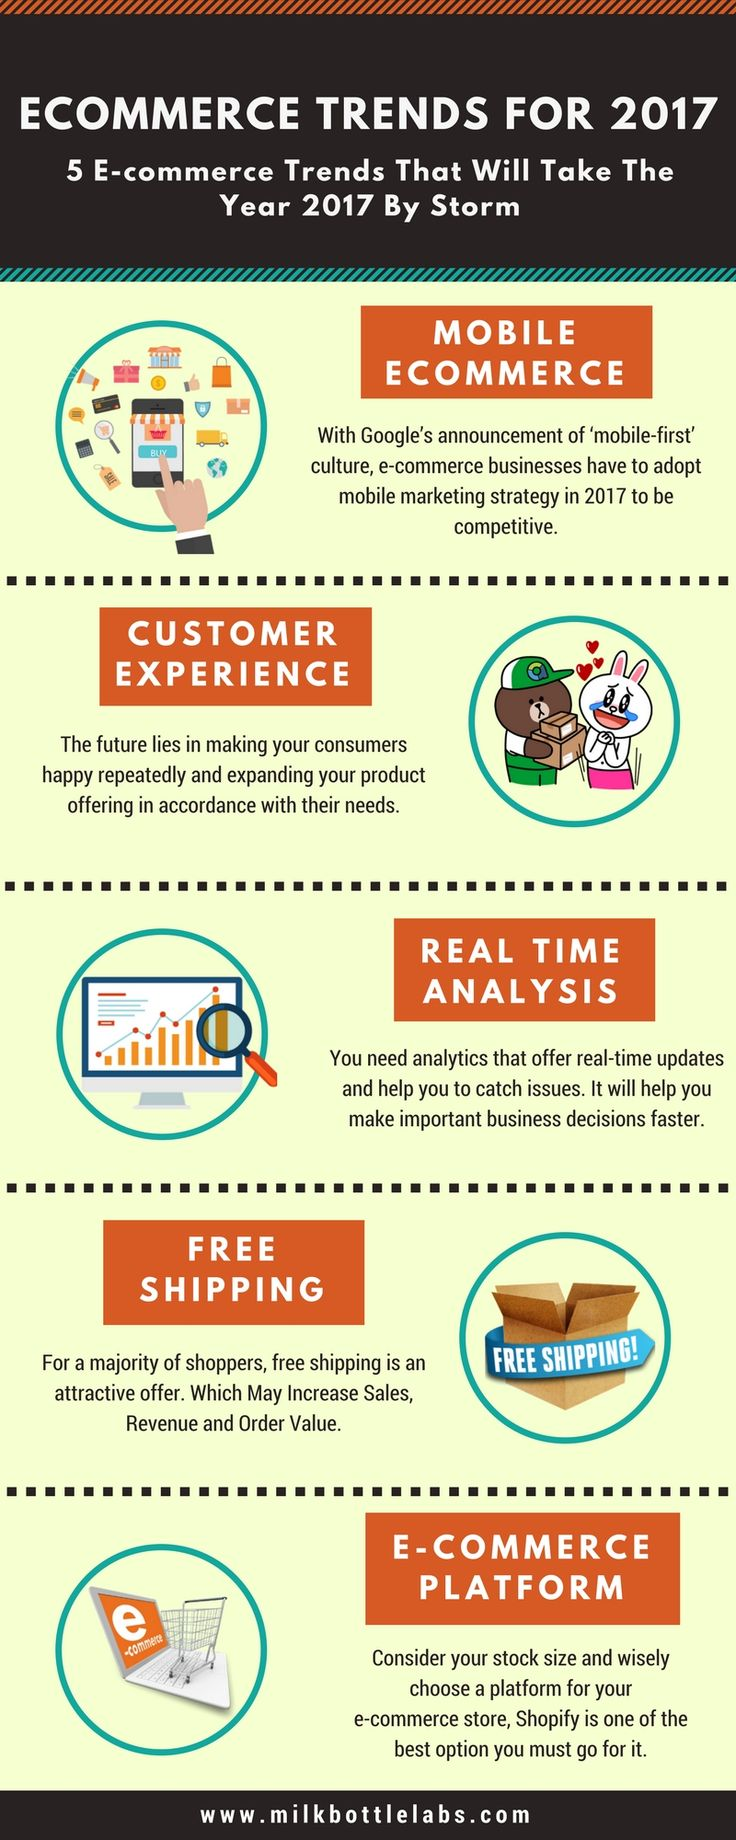 5 e-commerce trends that will probably take the year 2017 by storm and you, as an e-commerce business owner, needs to take these under consideration to ensure your online as well as offline sales growth.